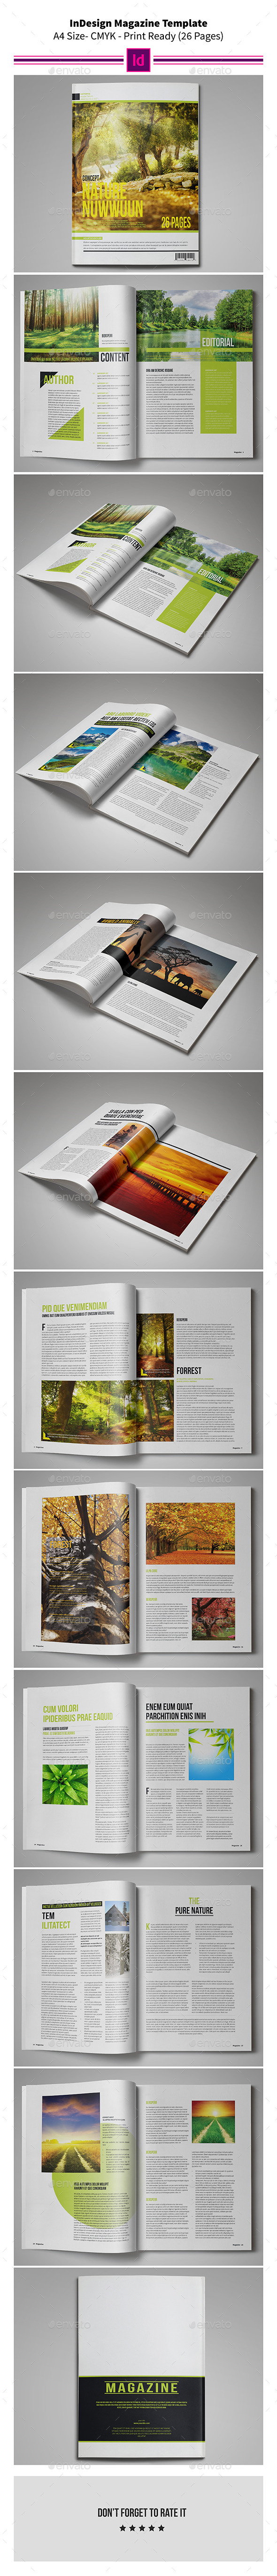 GraphicRiver Nature MagazineTemplate 26 Pages 9362533